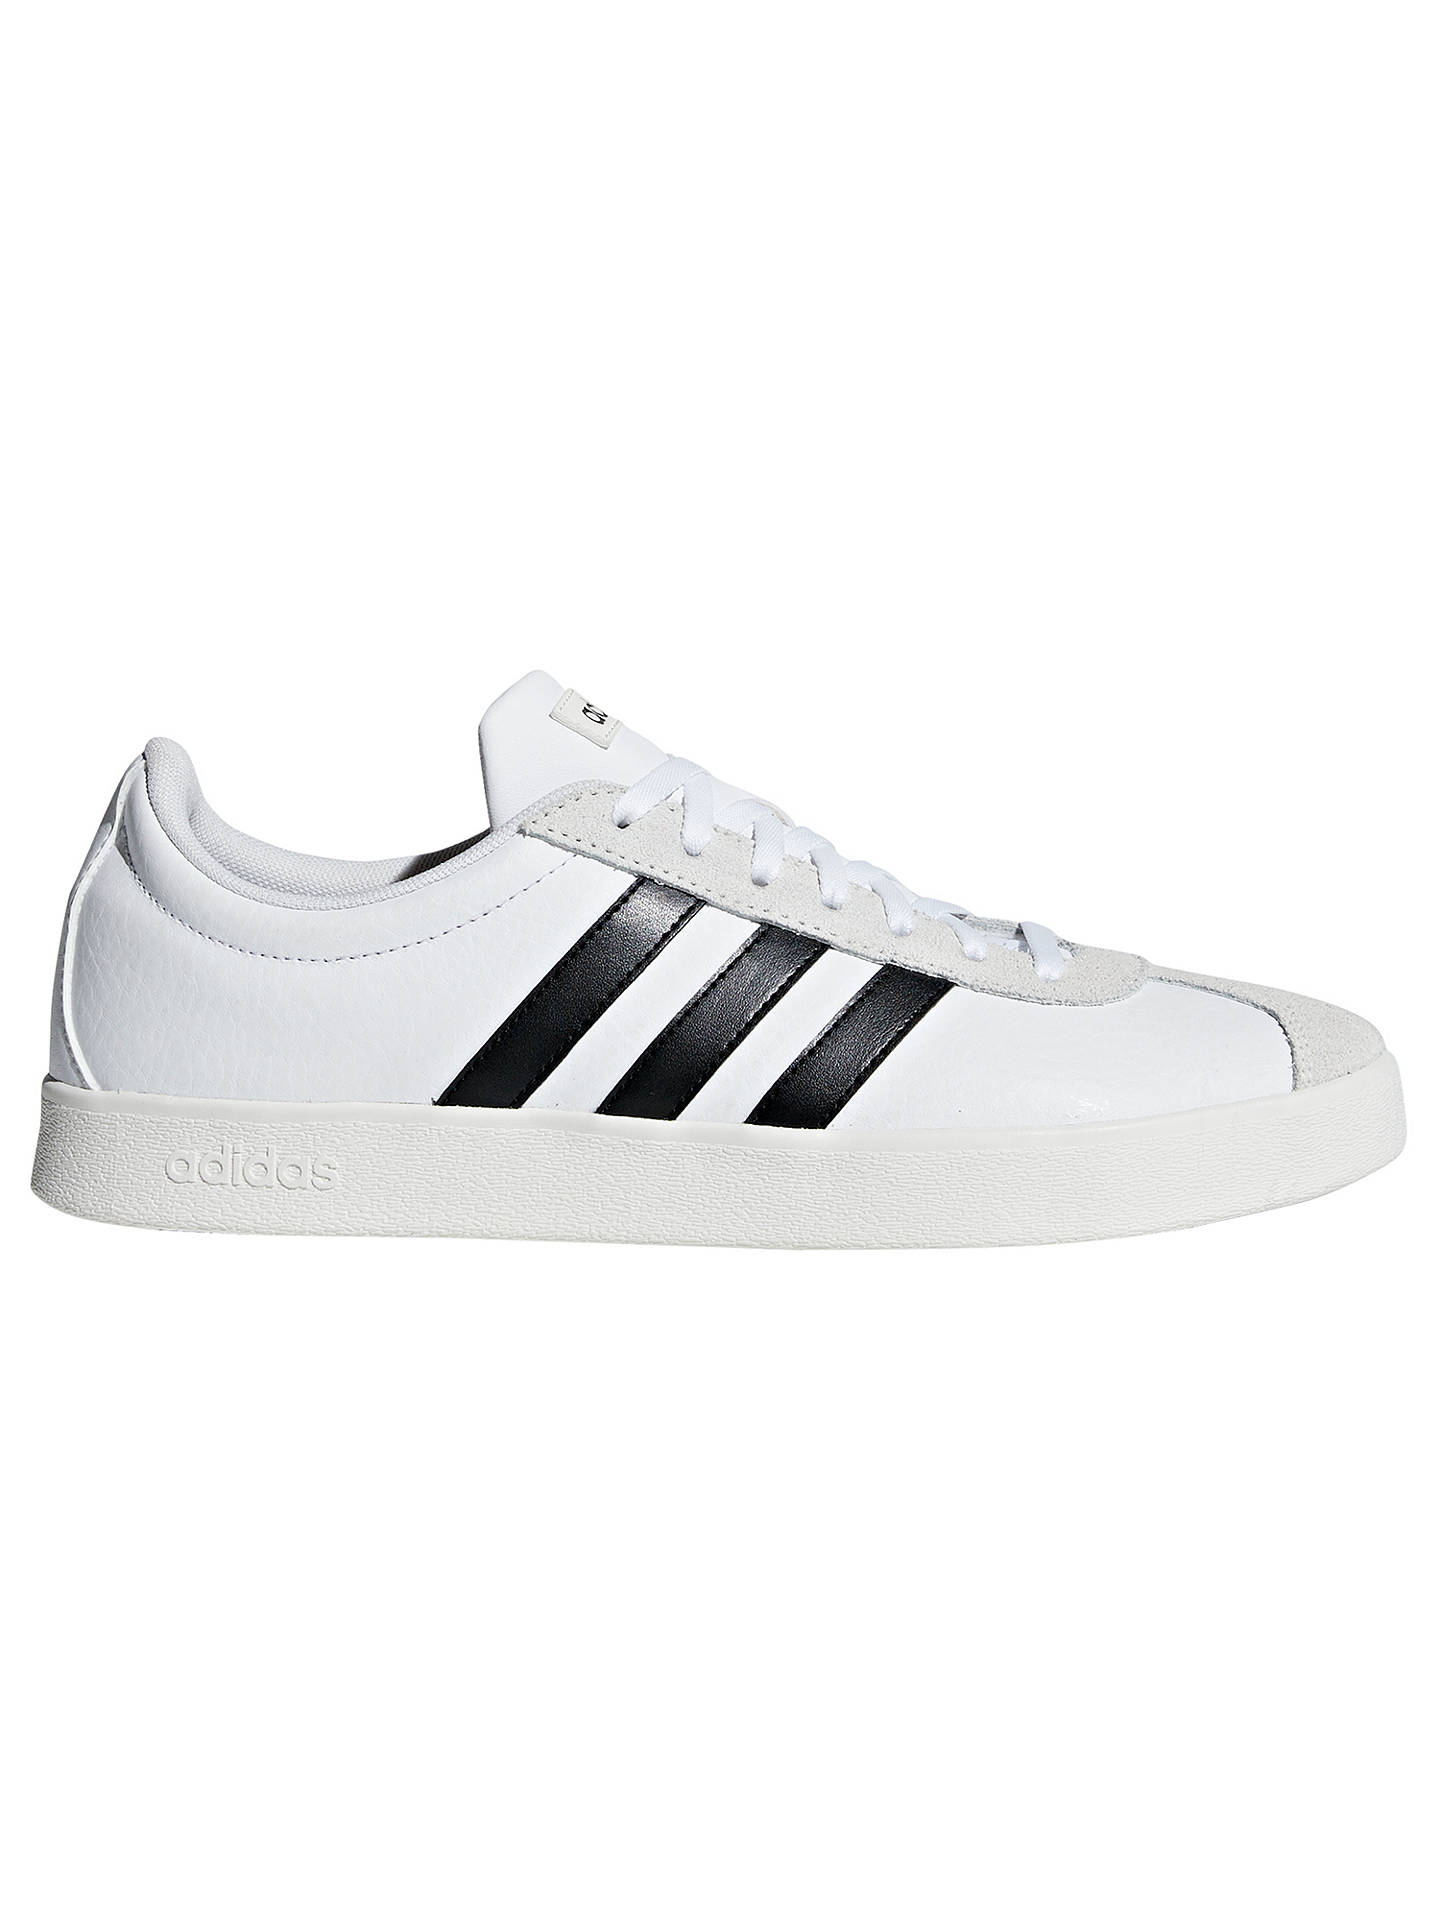 Buy adidas VL 2.0 Court Men's Trainers, White, 7 Online at johnlewis.com